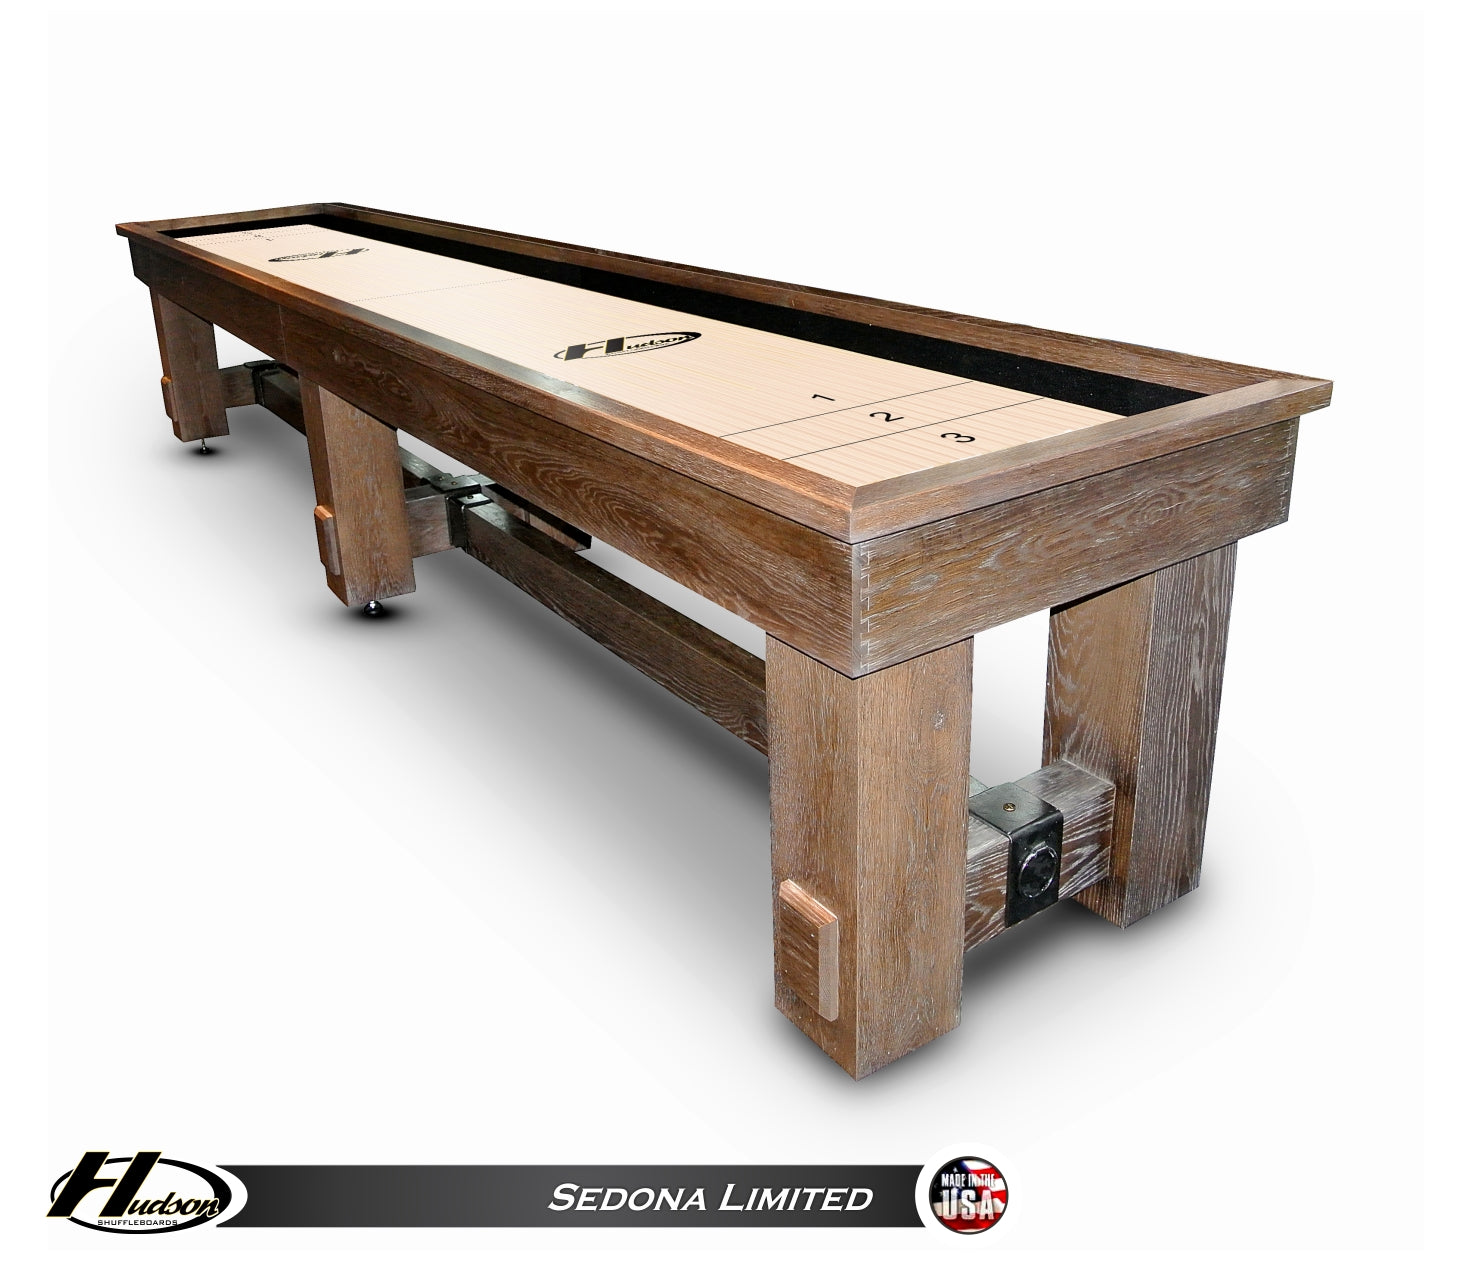 Sedona Limited Shuffleboard Table